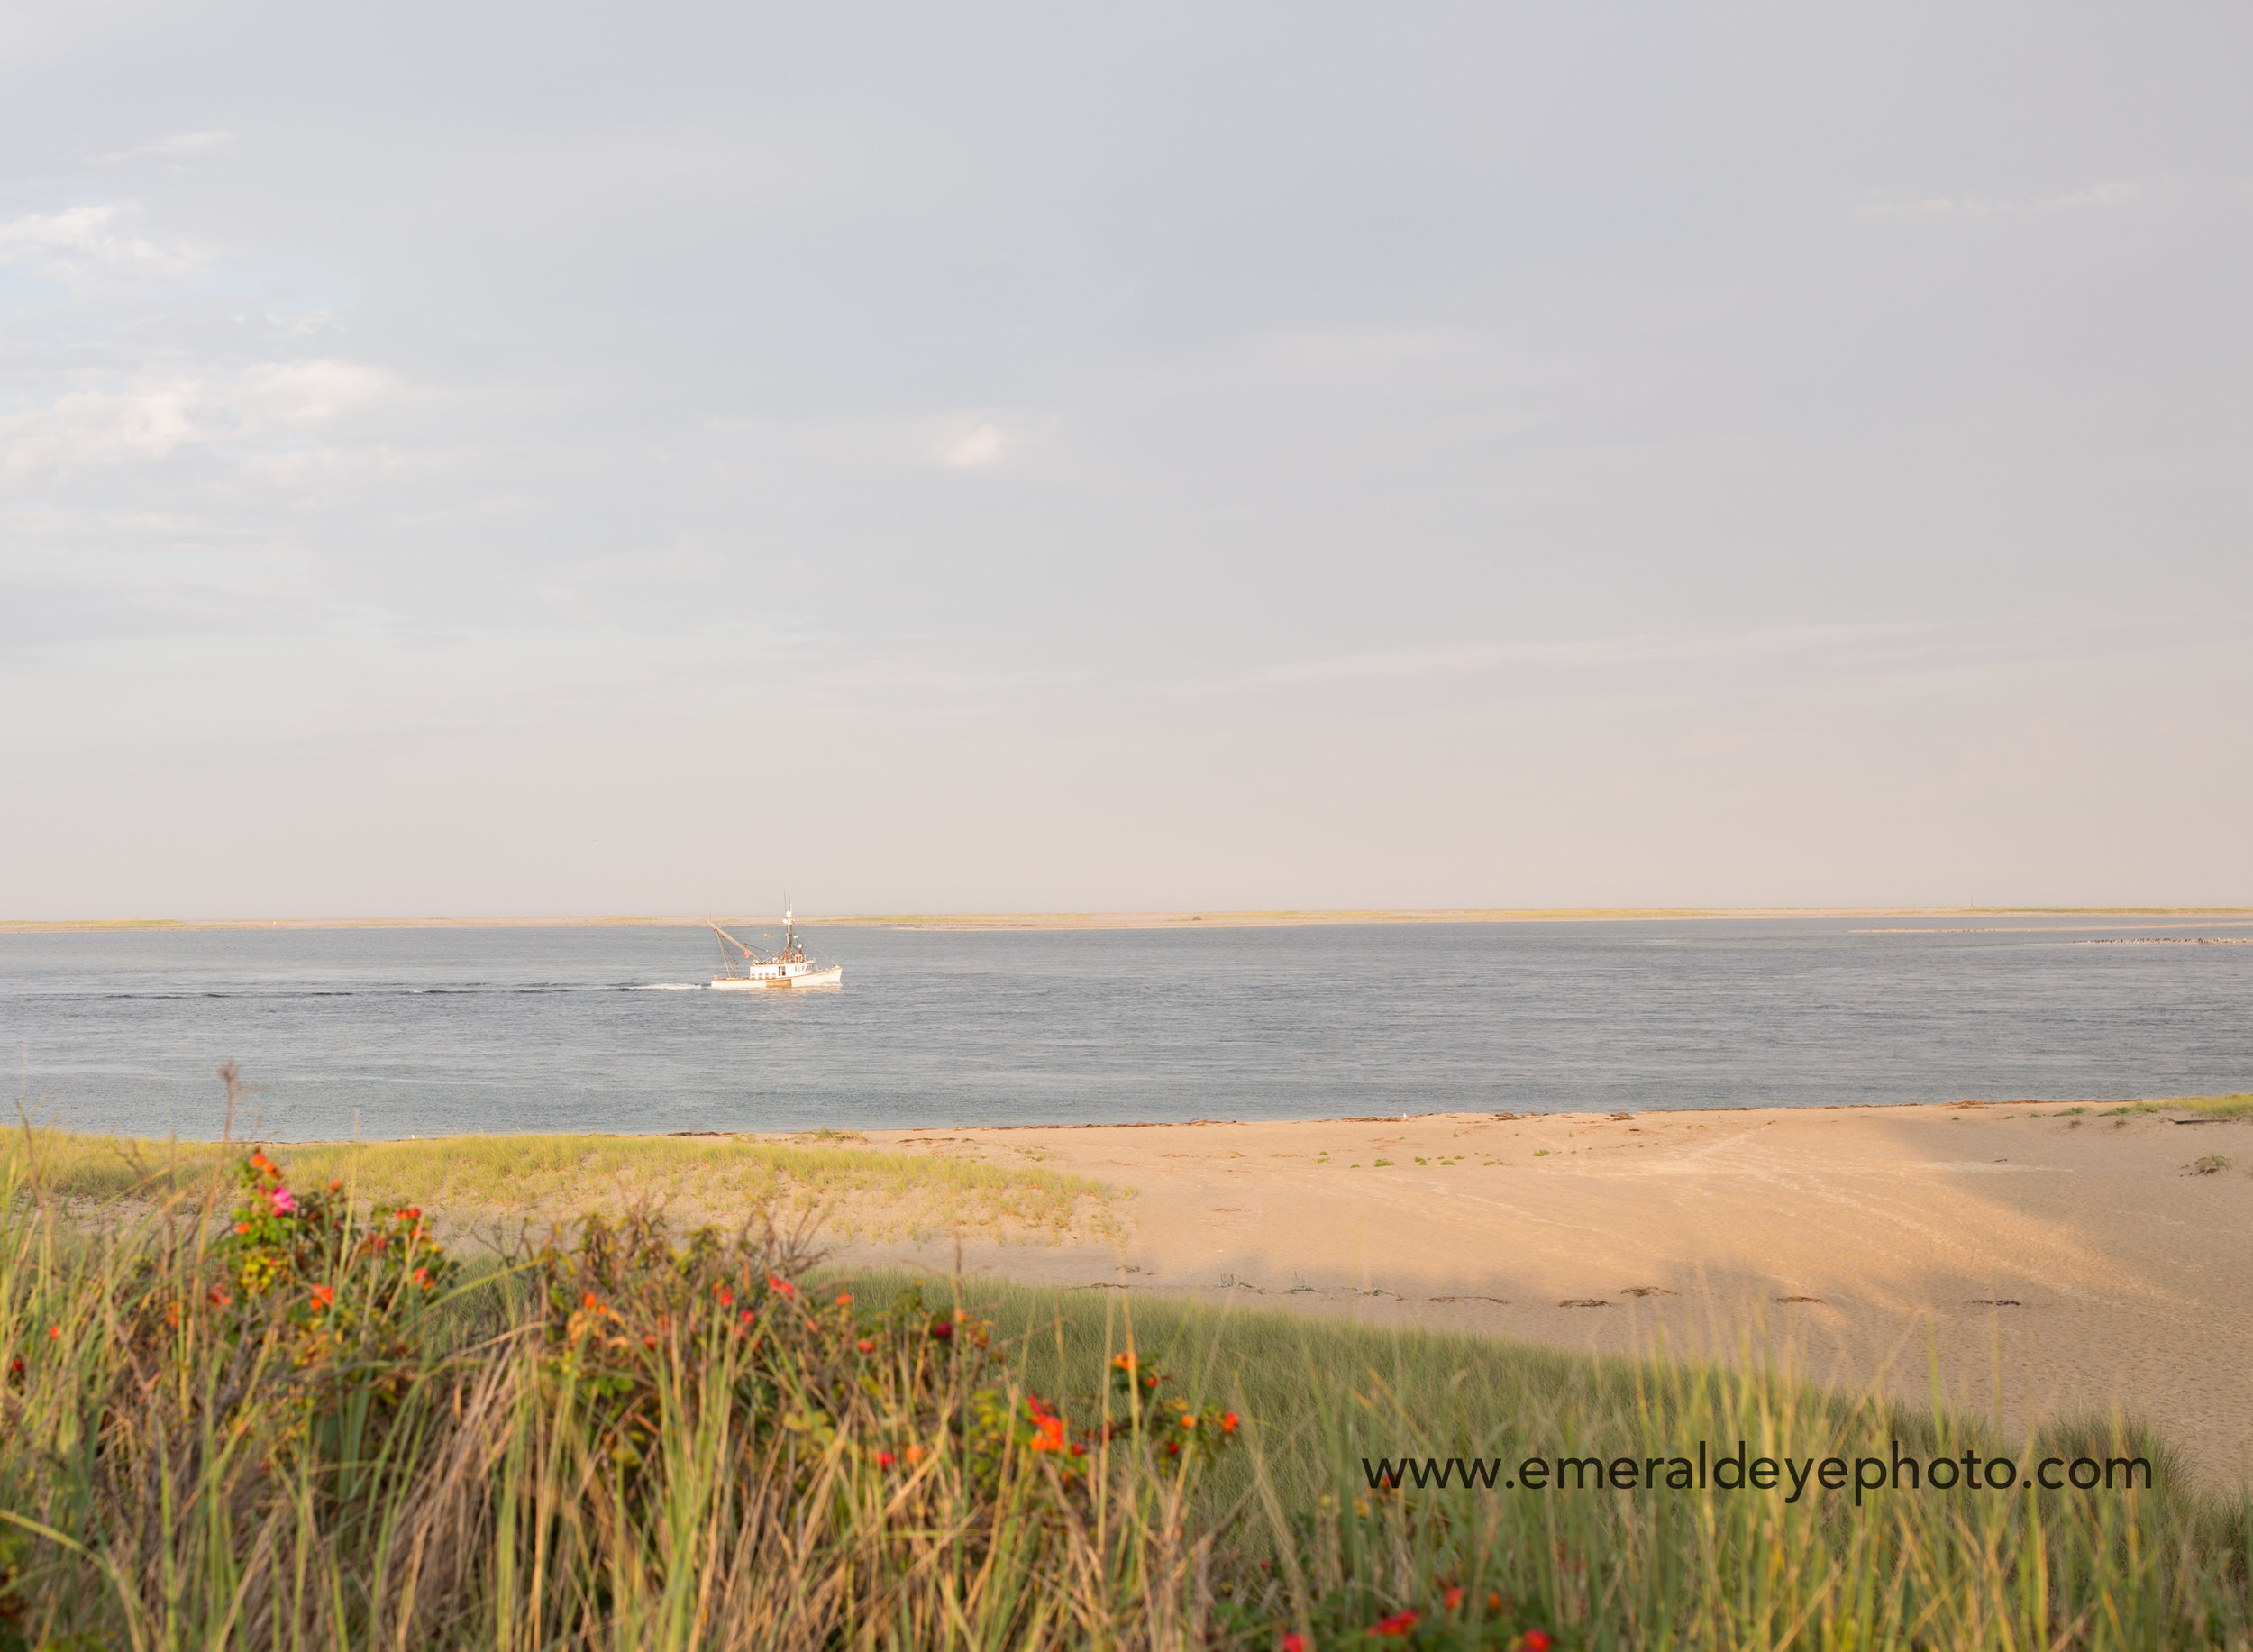 Boat in the water in Chatham Massachusetts